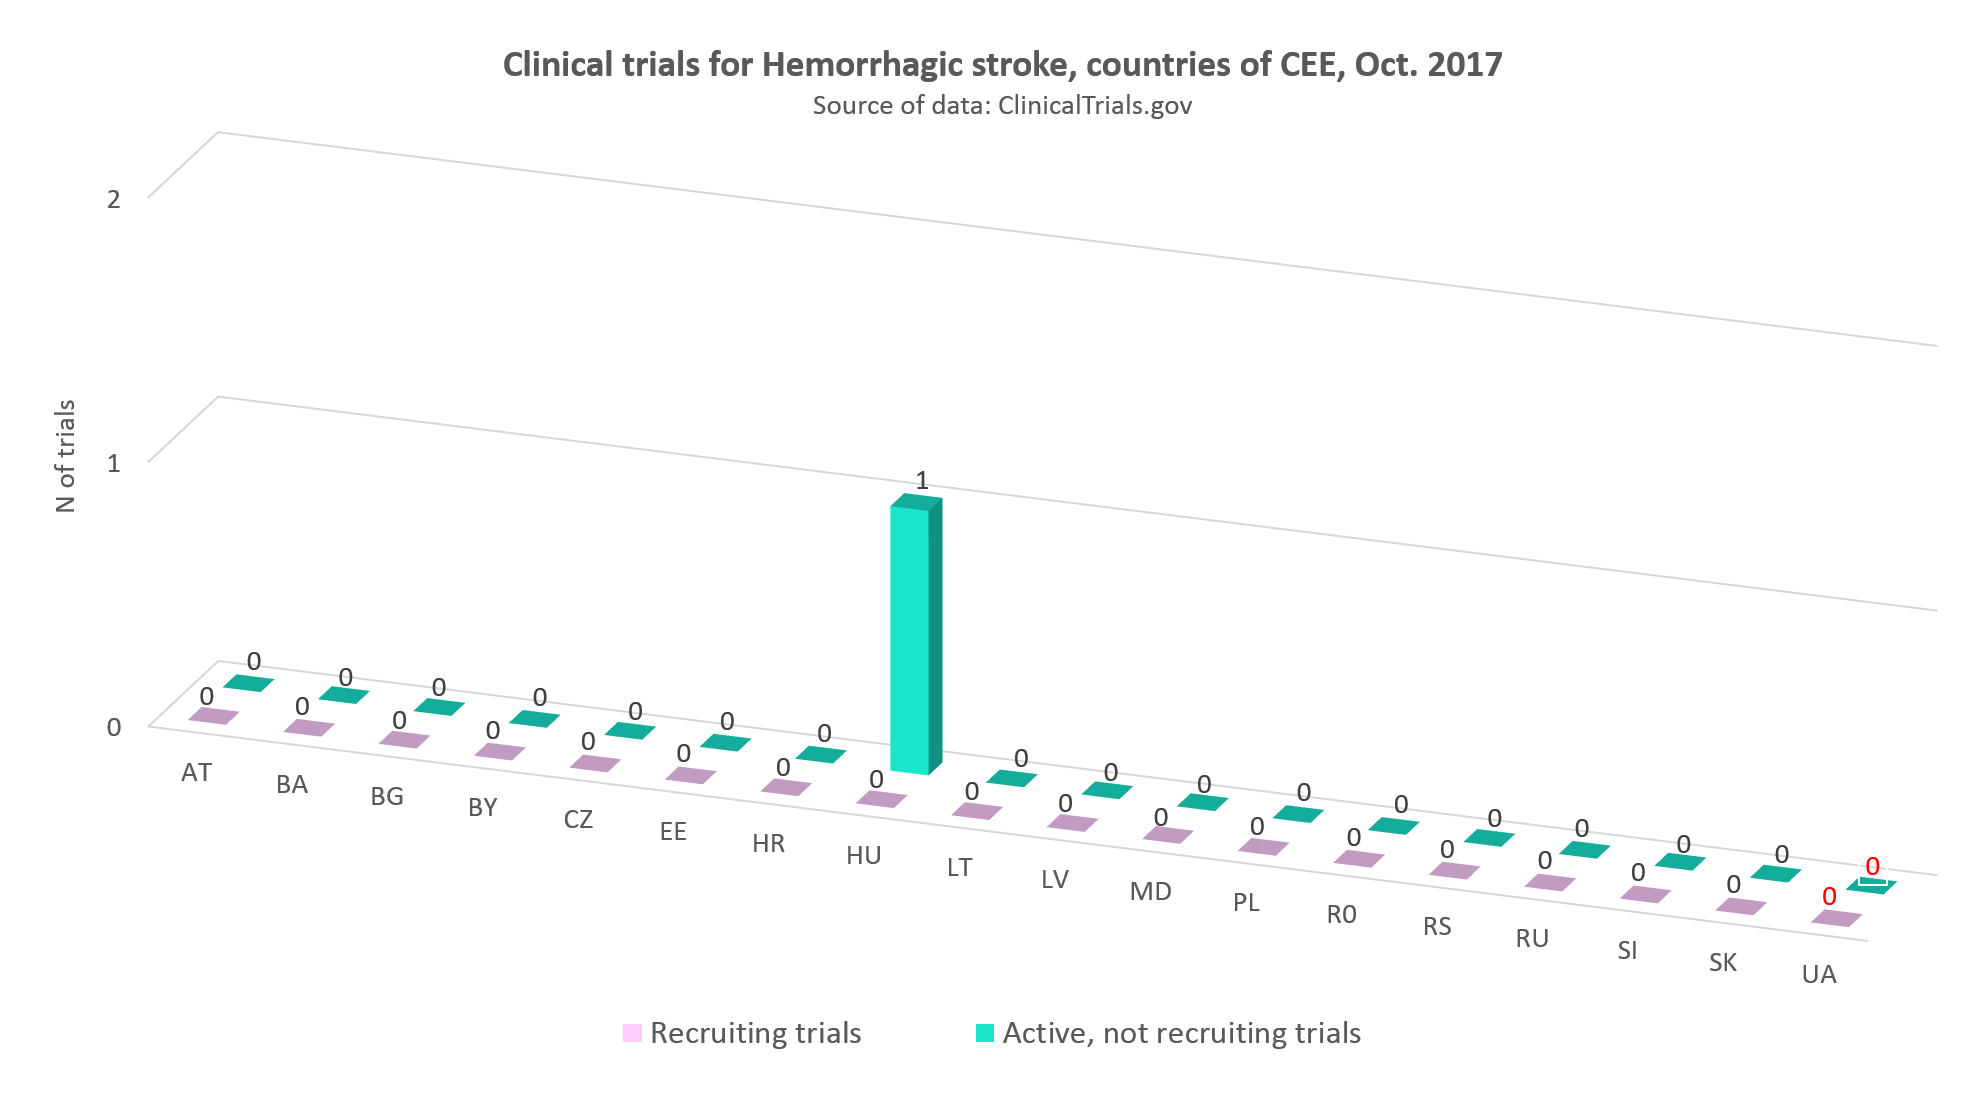 Clinical trials for hemorrhage stroke in the countries of CEE, Оctober 2017